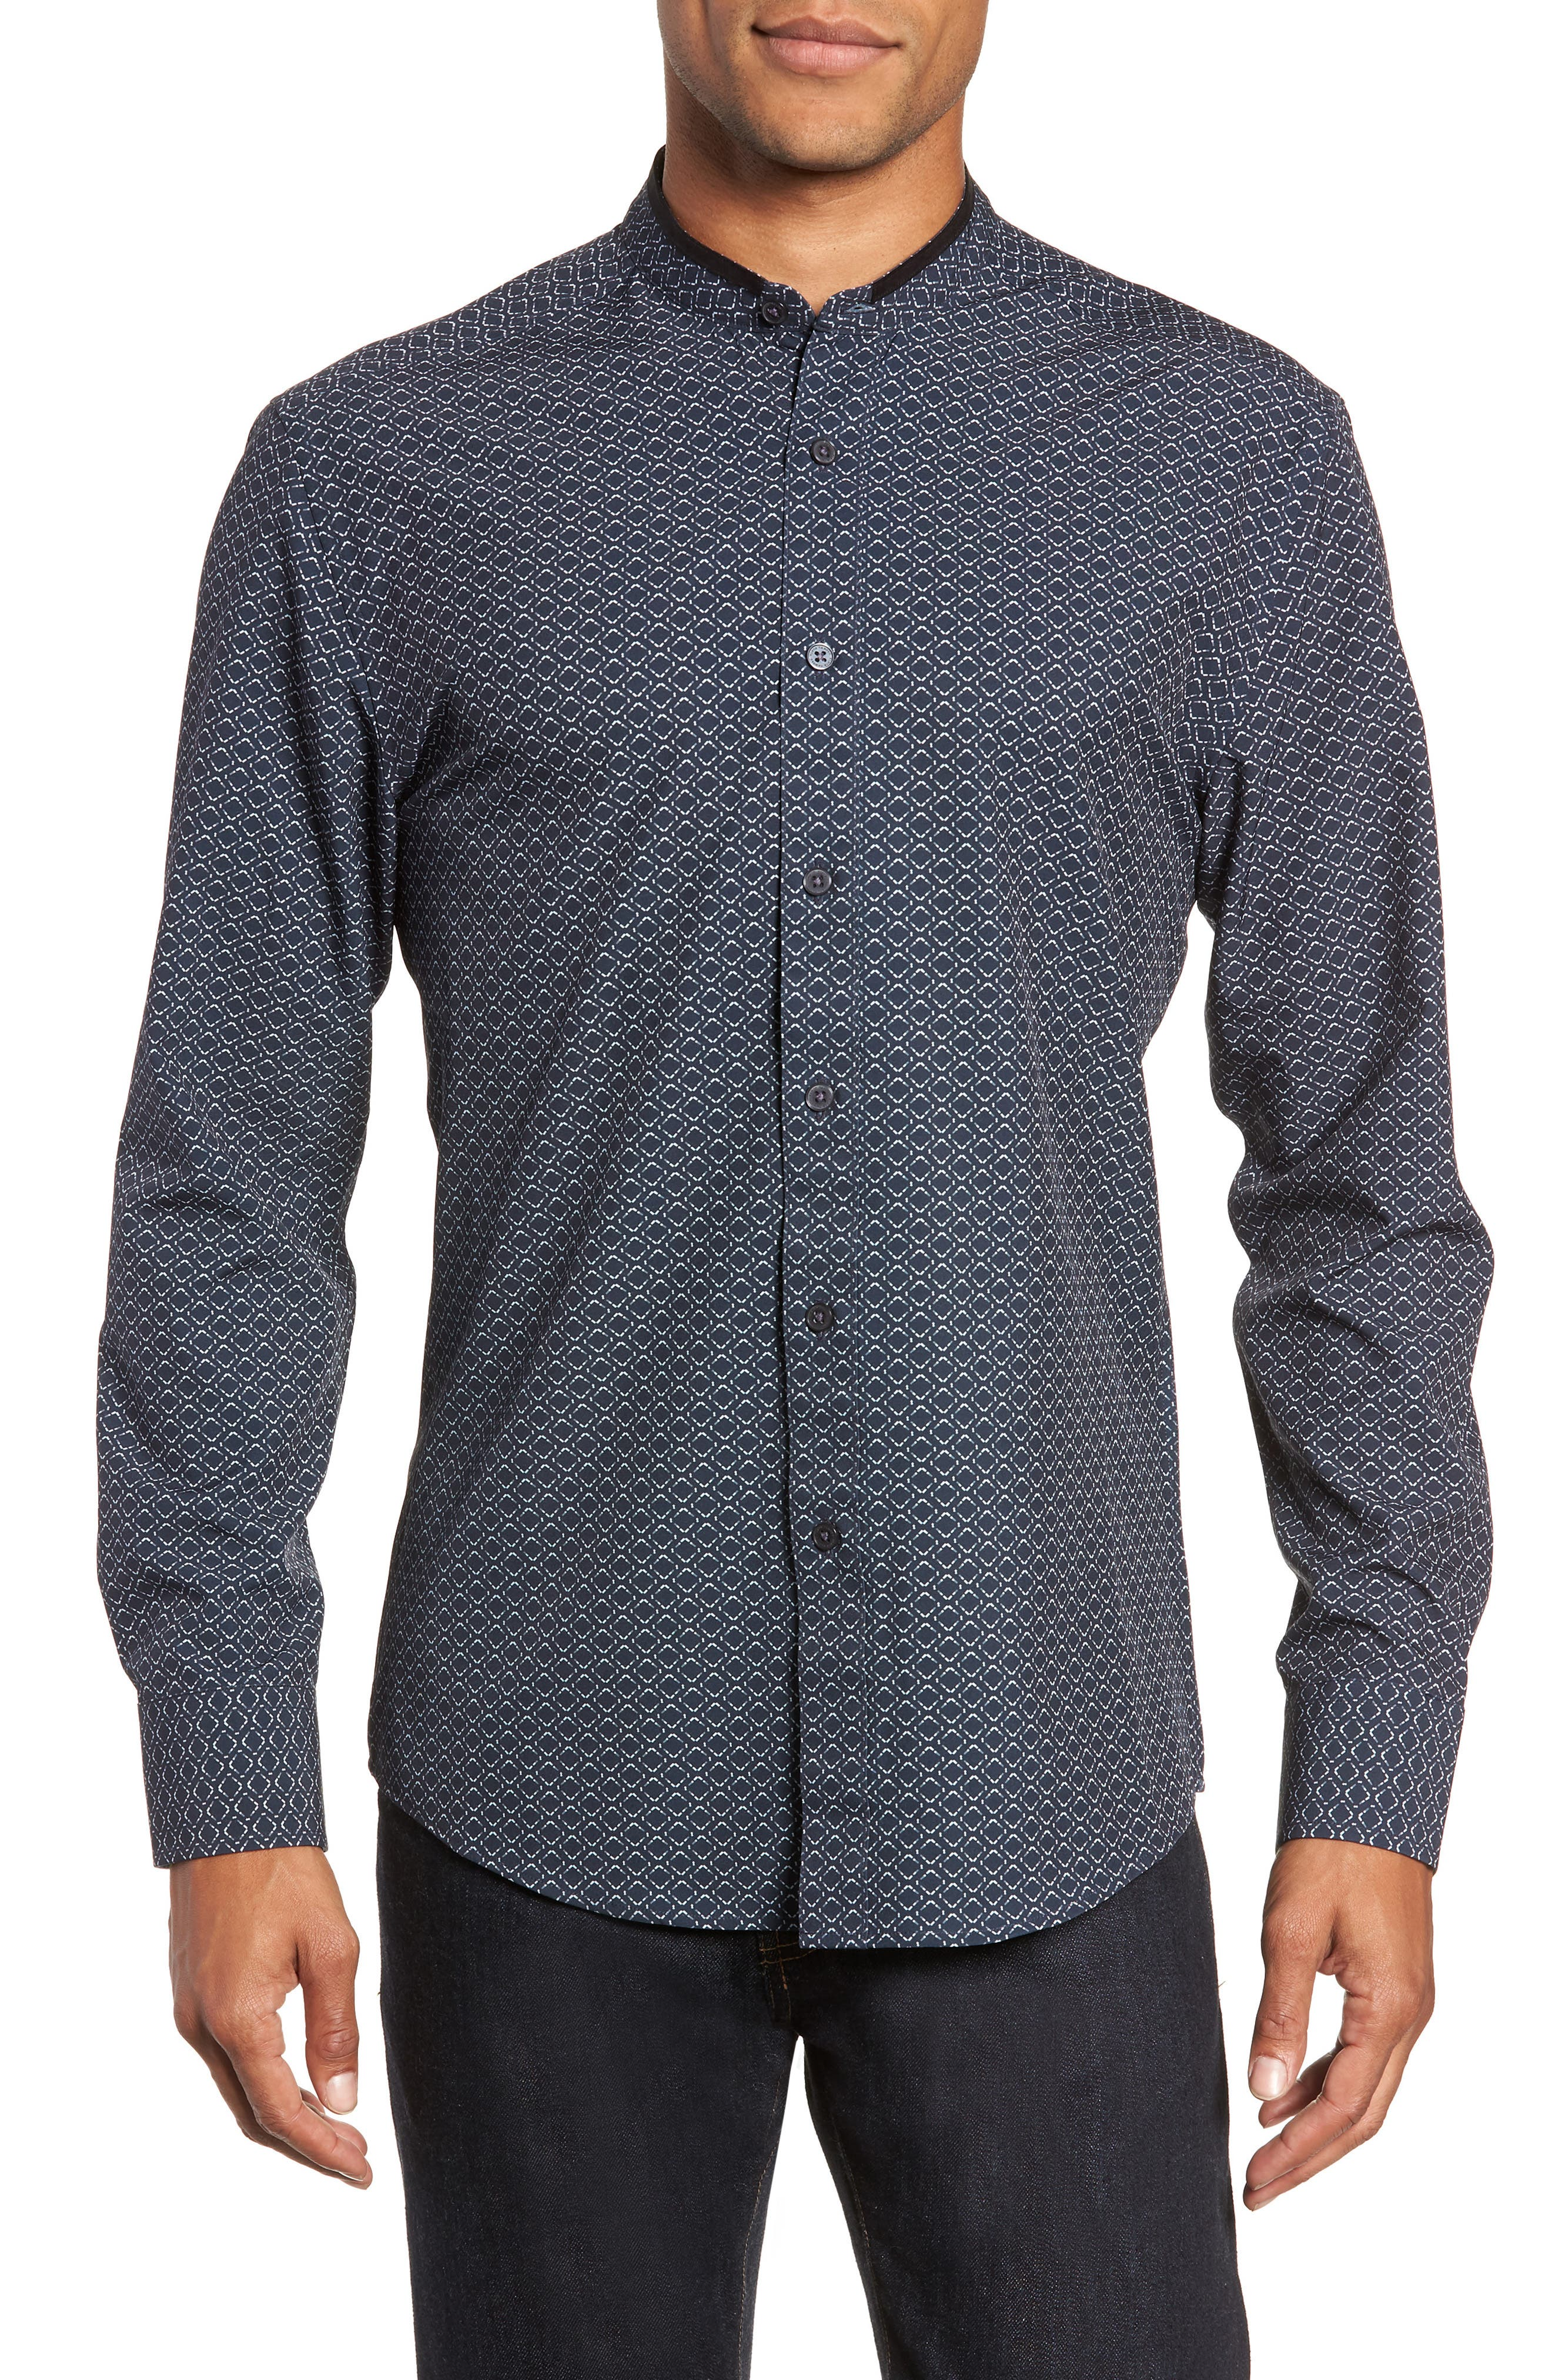 Vince Camuto Band Collar Performance Knit Sport Shirt, Blue